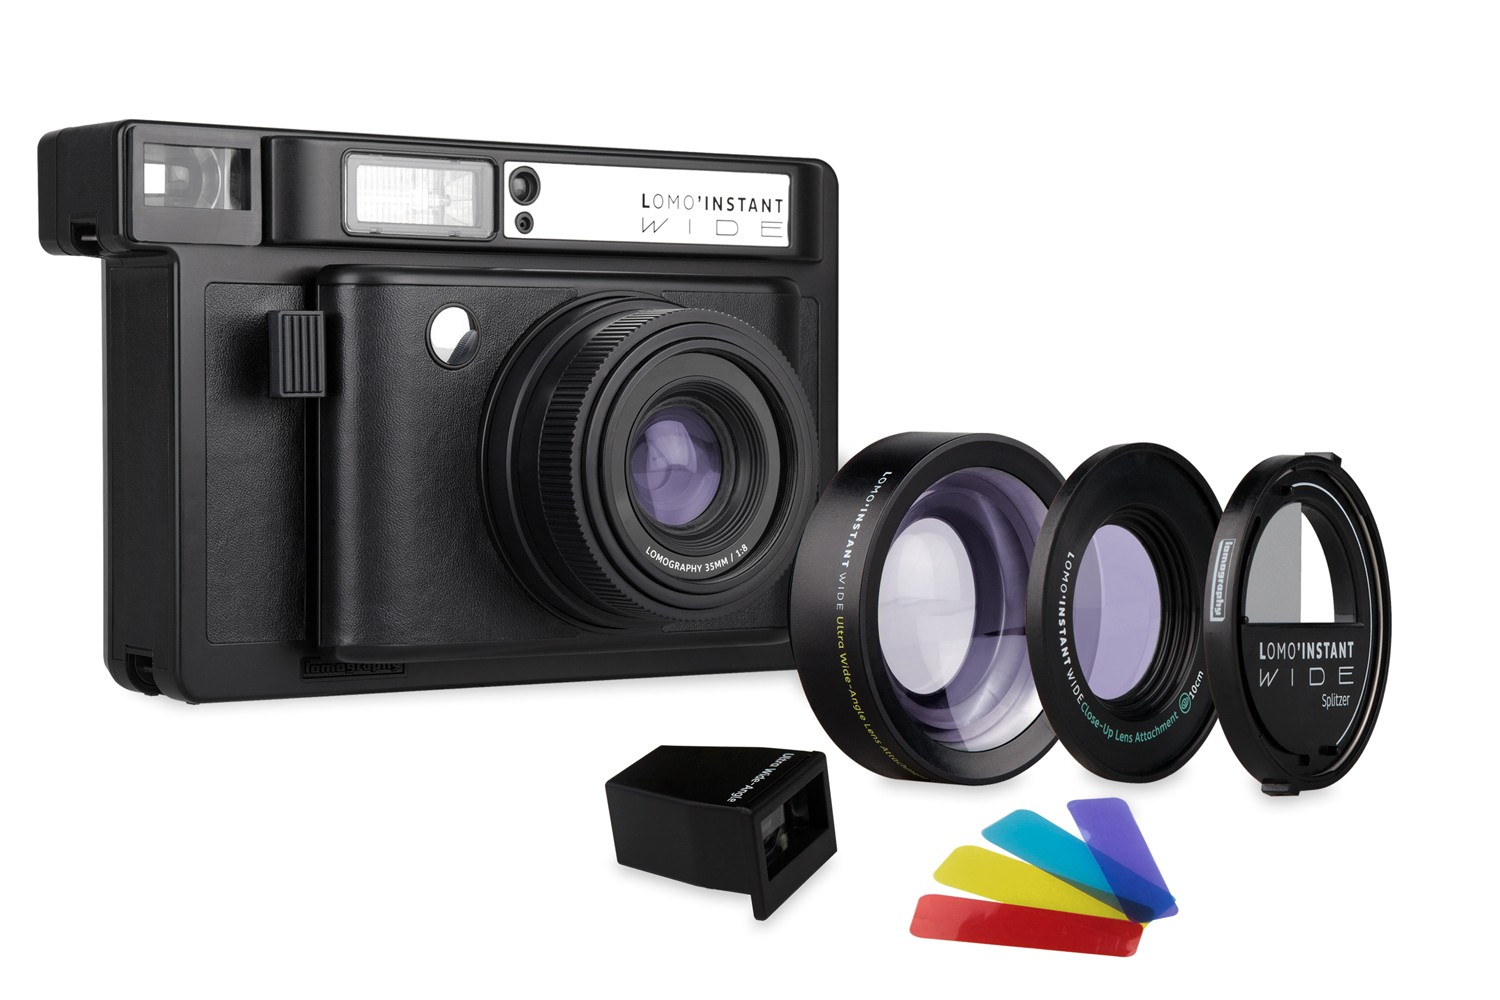 Lomo'Instant Wide Camera and Lenses (ブラック)